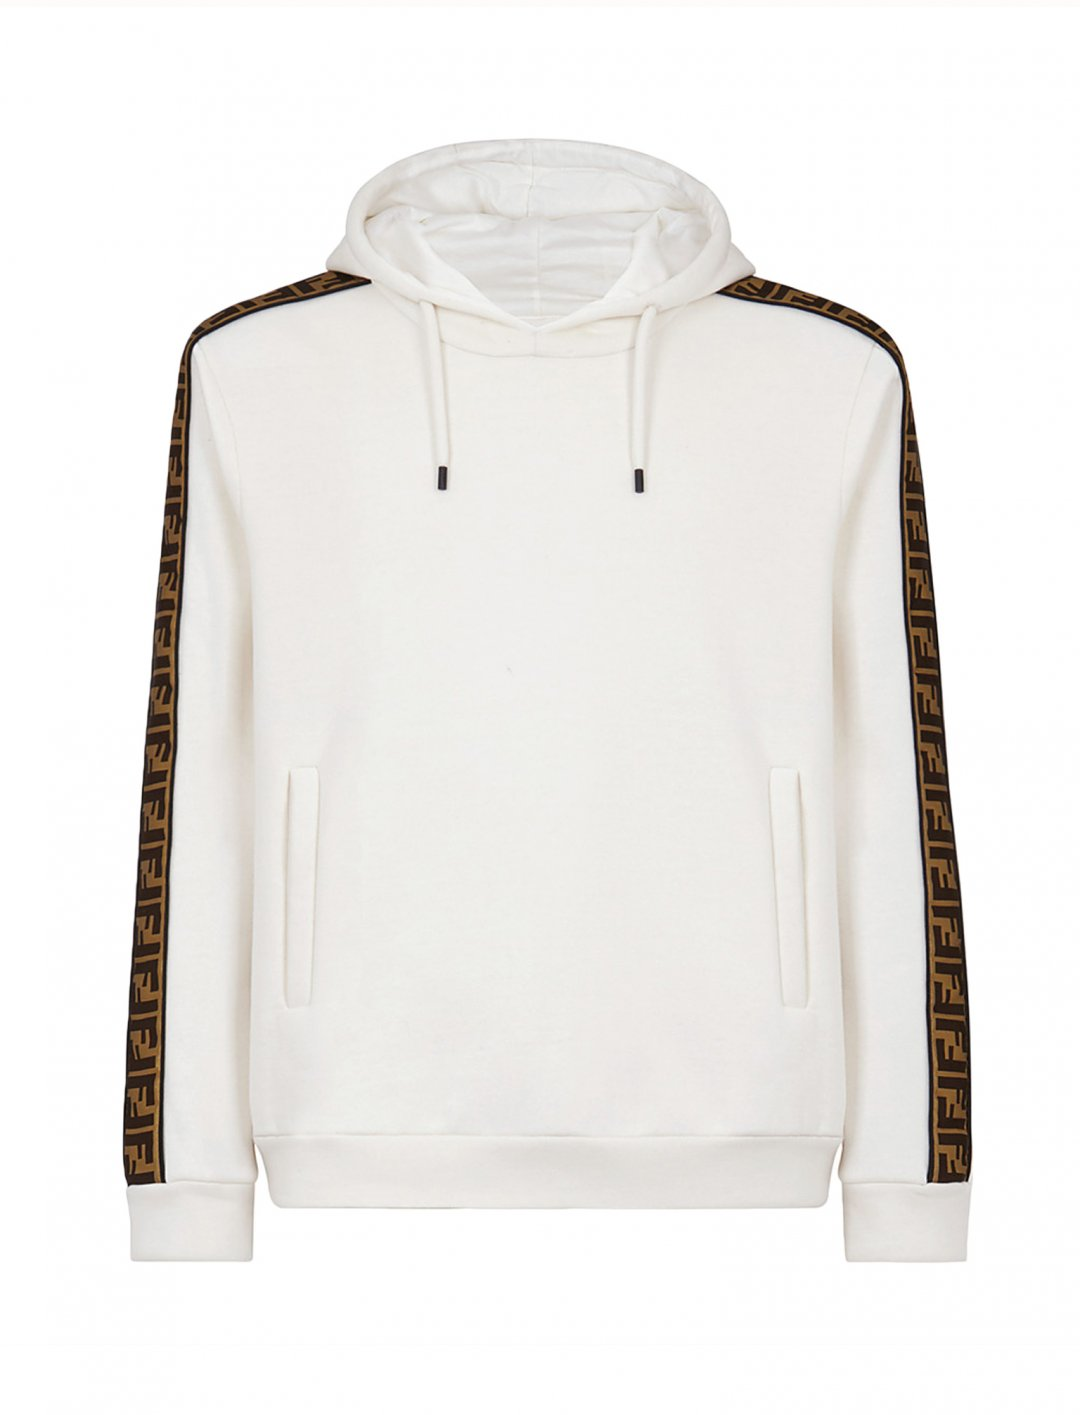 "Headie One's Sweatshirt {""id"":5,""product_section_id"":1,""name"":""Clothing"",""order"":5} Fendi"